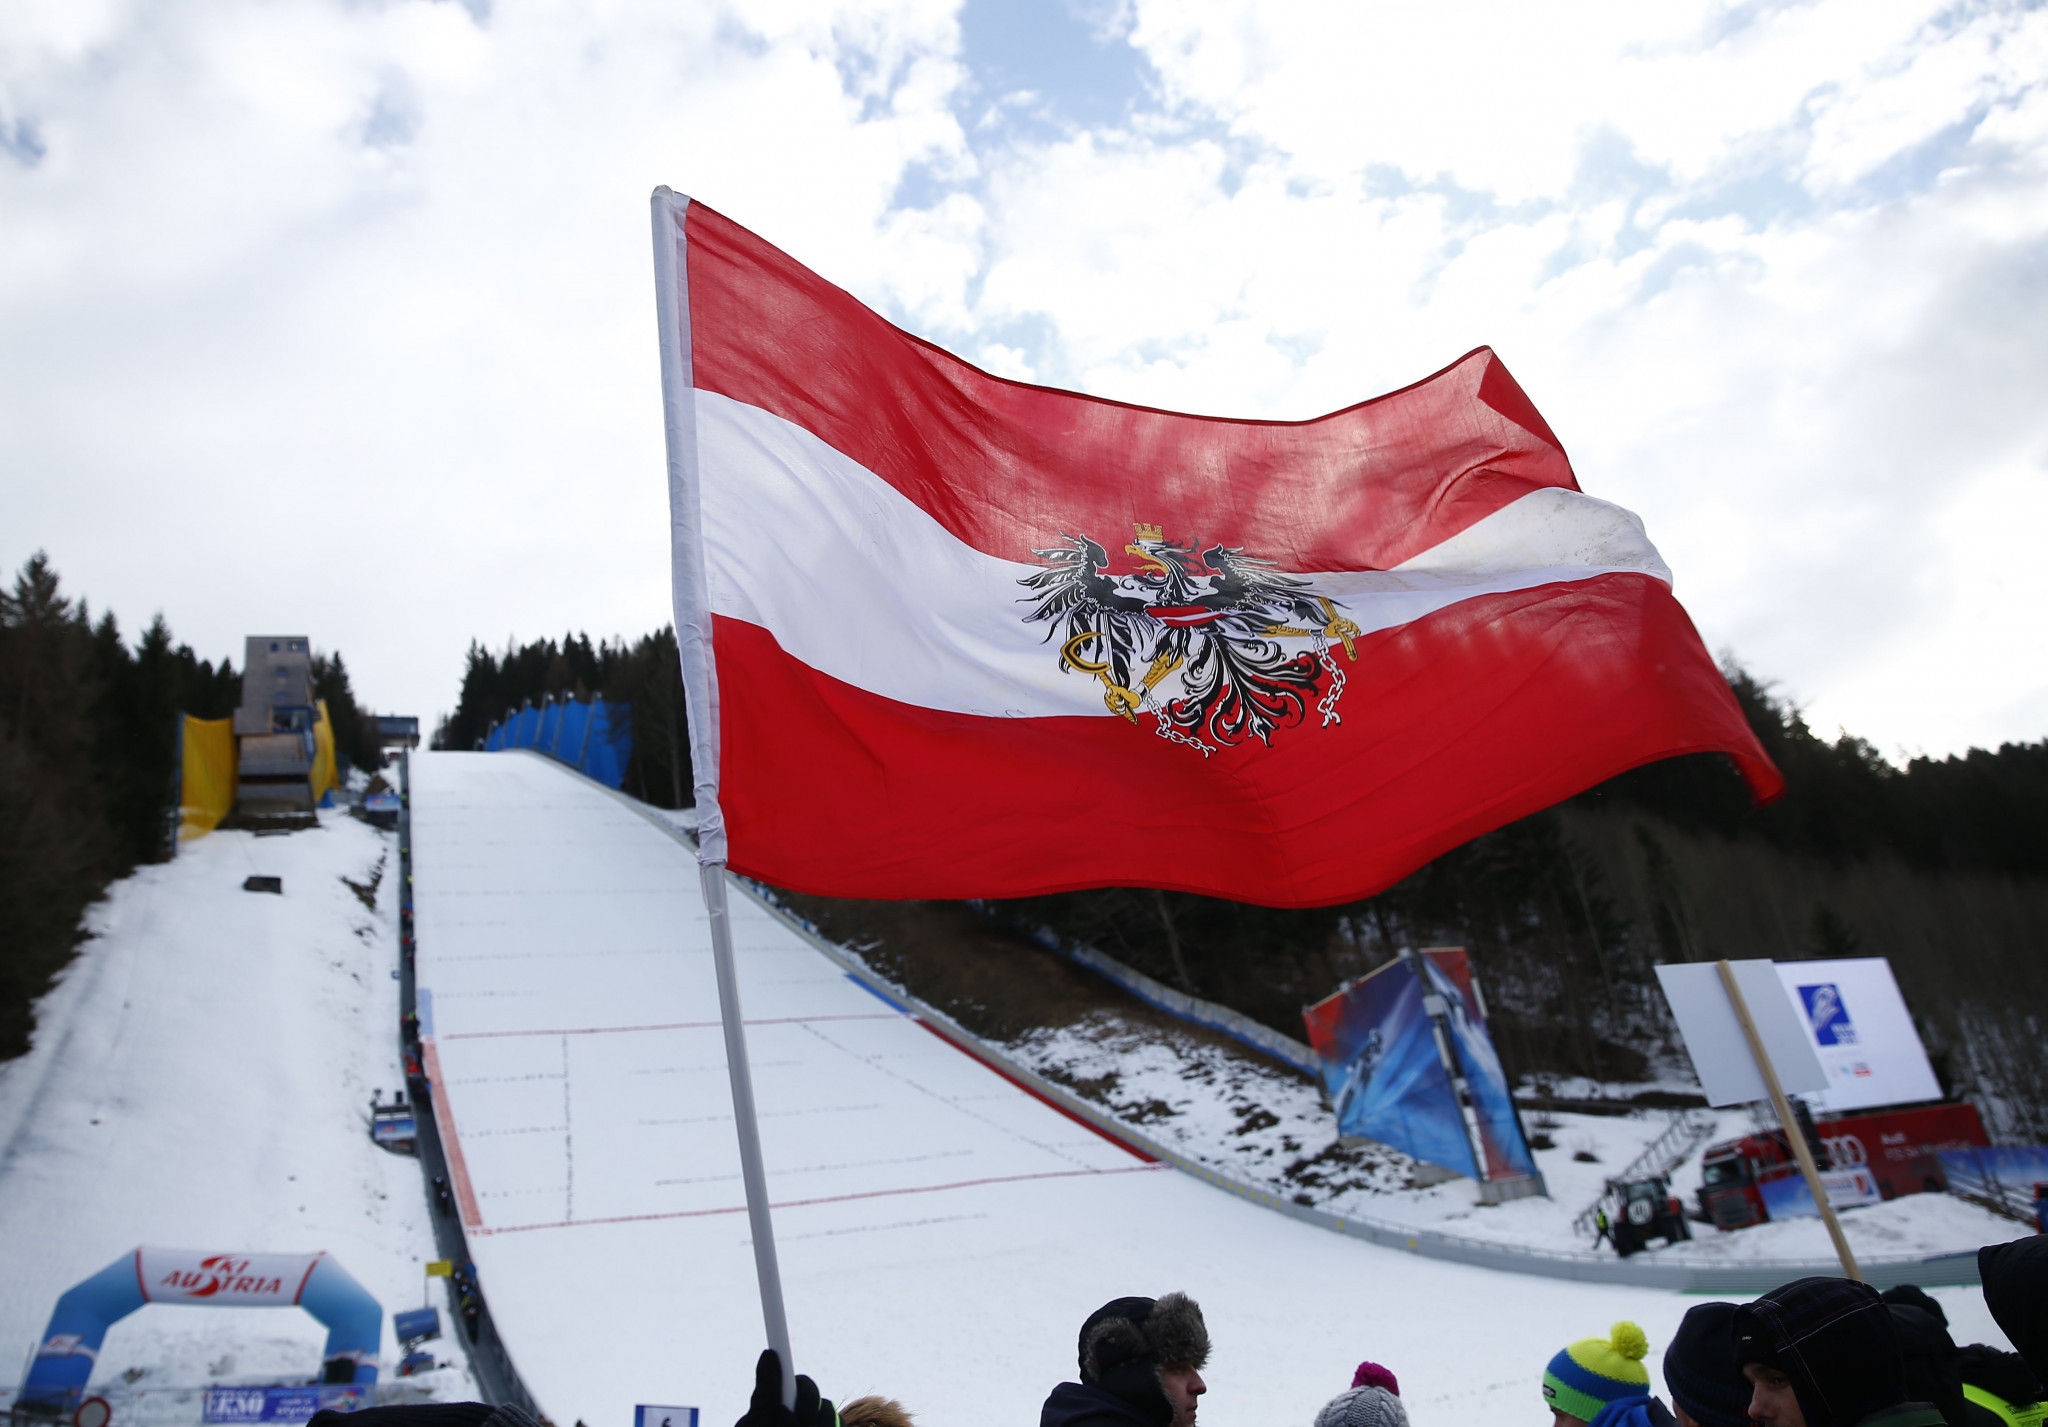 Poll suggests support for Graz and Schladming bid for 2026 Winter Olympics